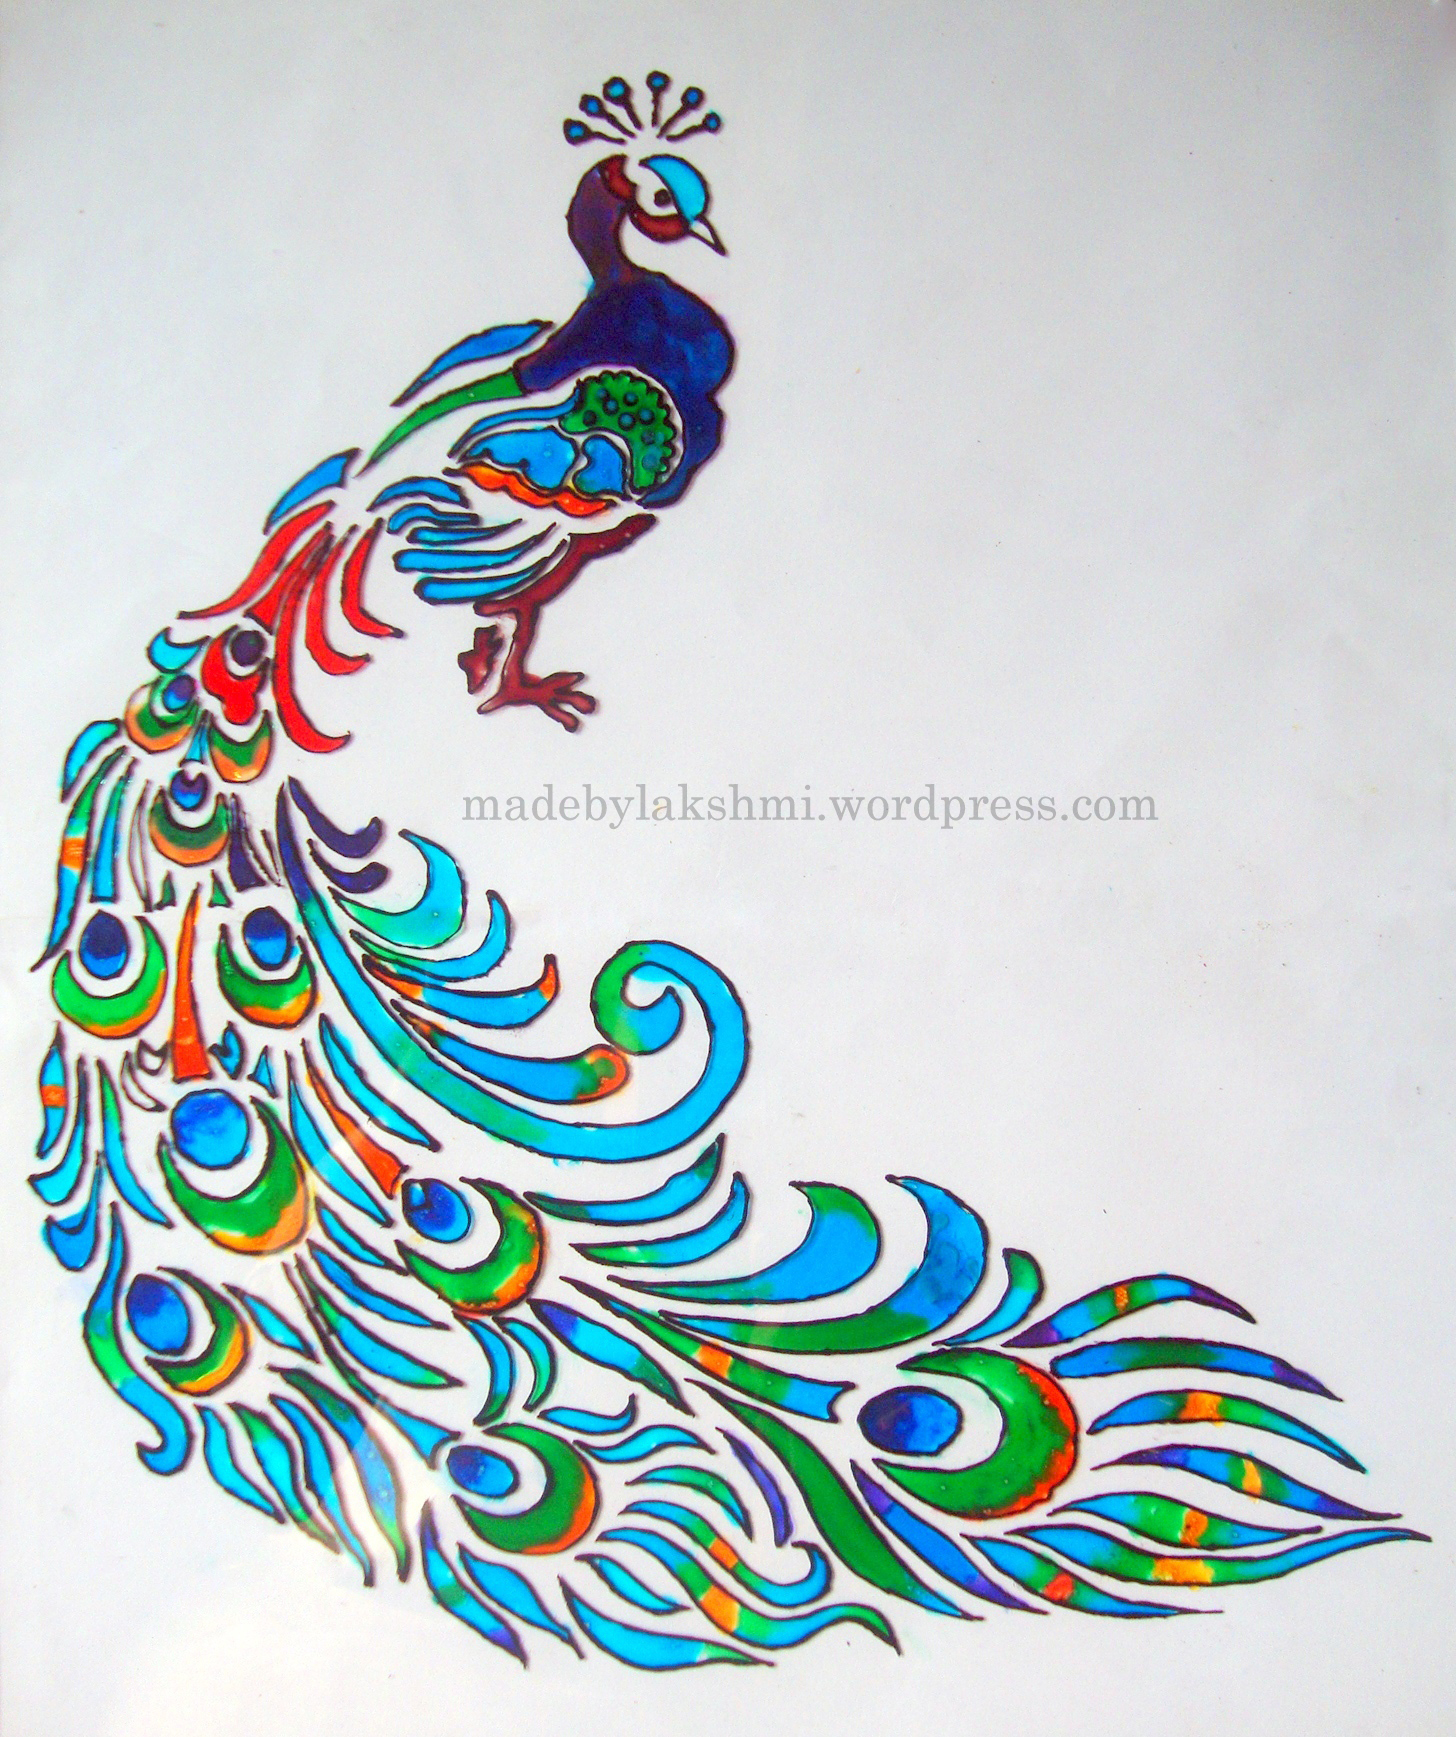 glass painting tutorial m de by lakshmi